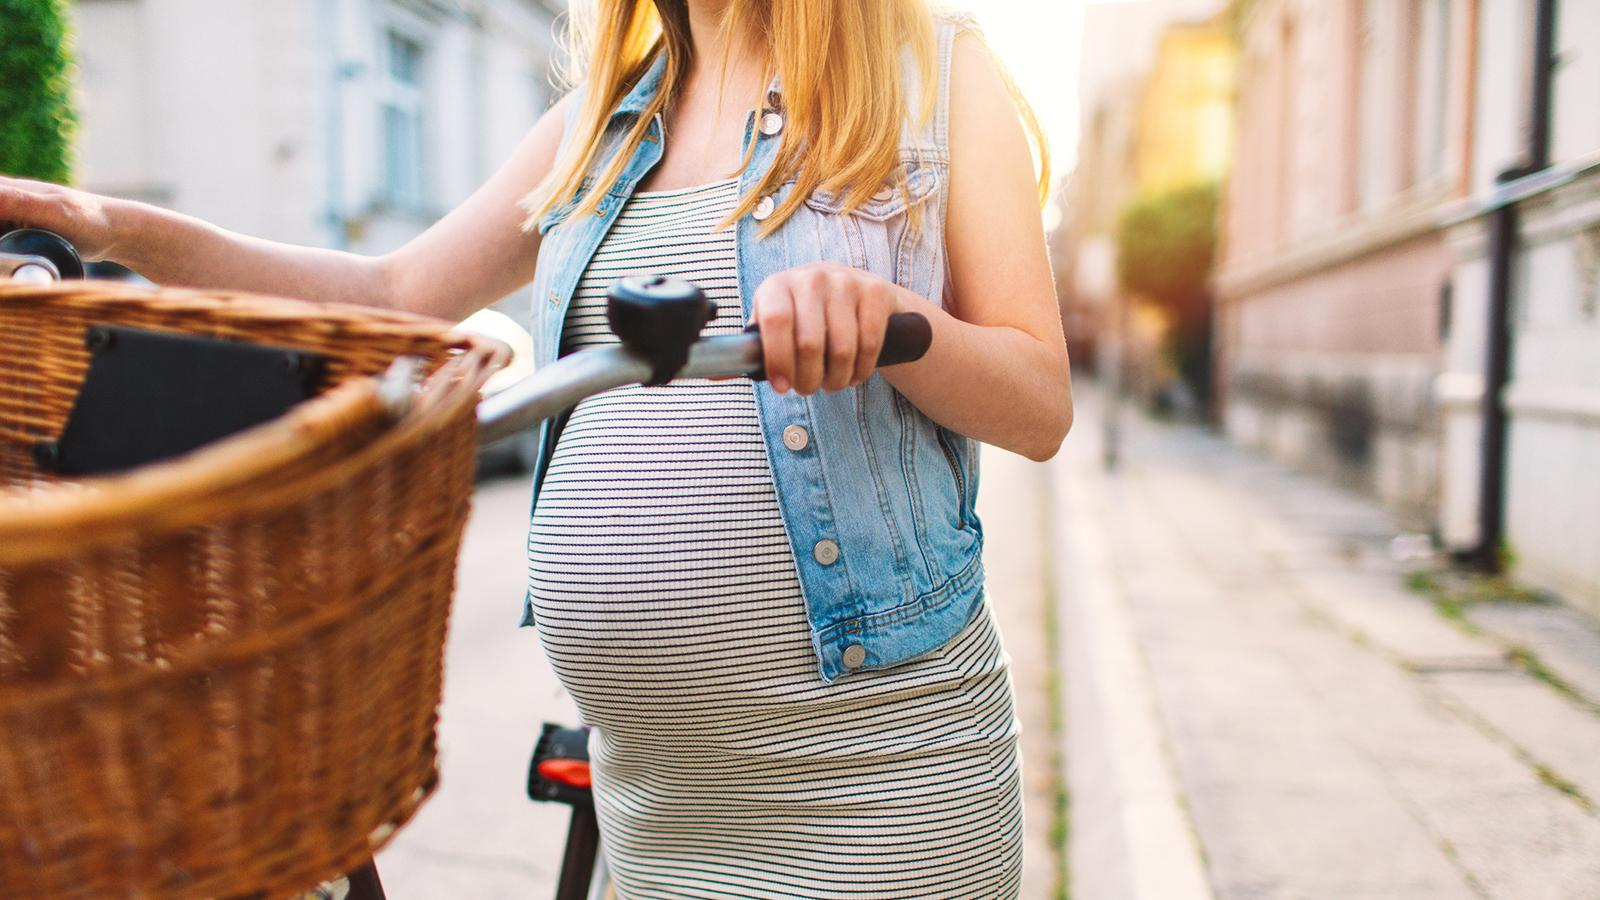 French Authorities Call for Larger Health Warnings for Pregnant Women on Wine